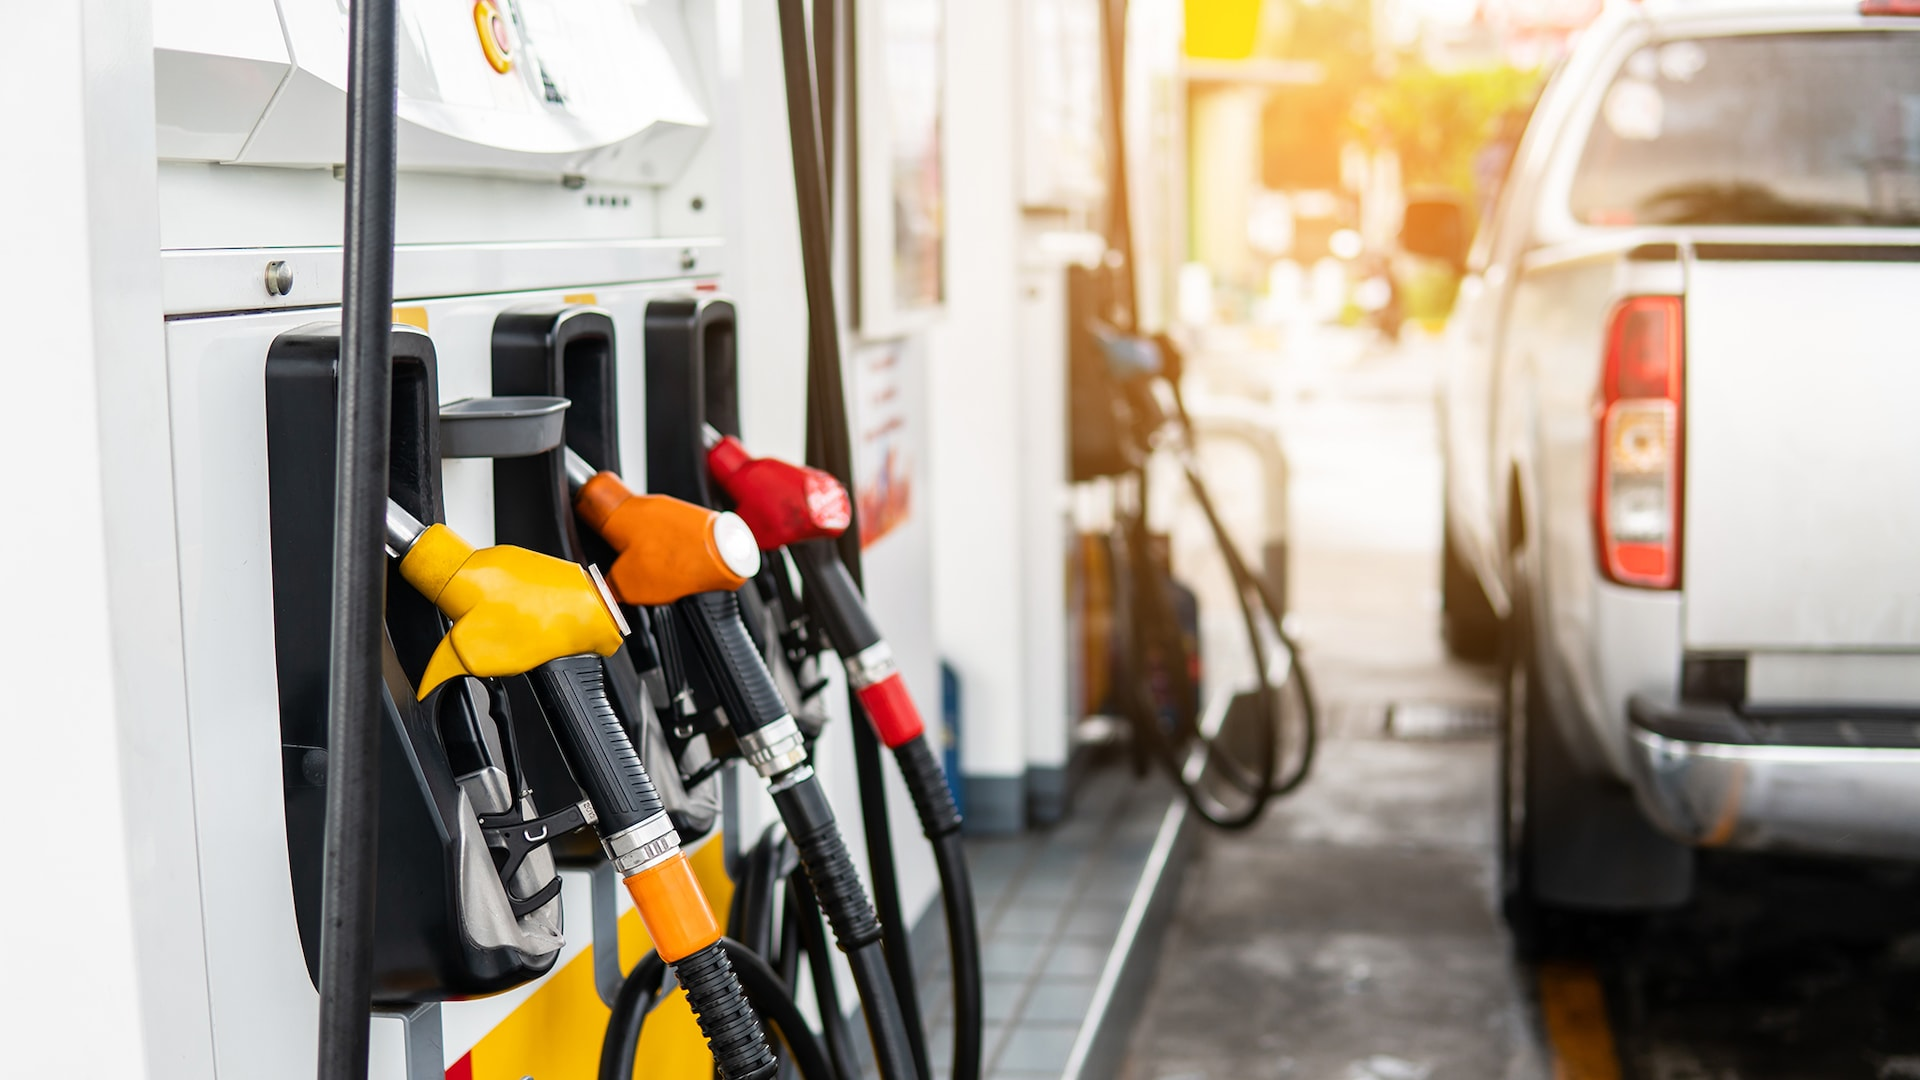 California city is first in U.S. to ban new gas stations 3/25/21